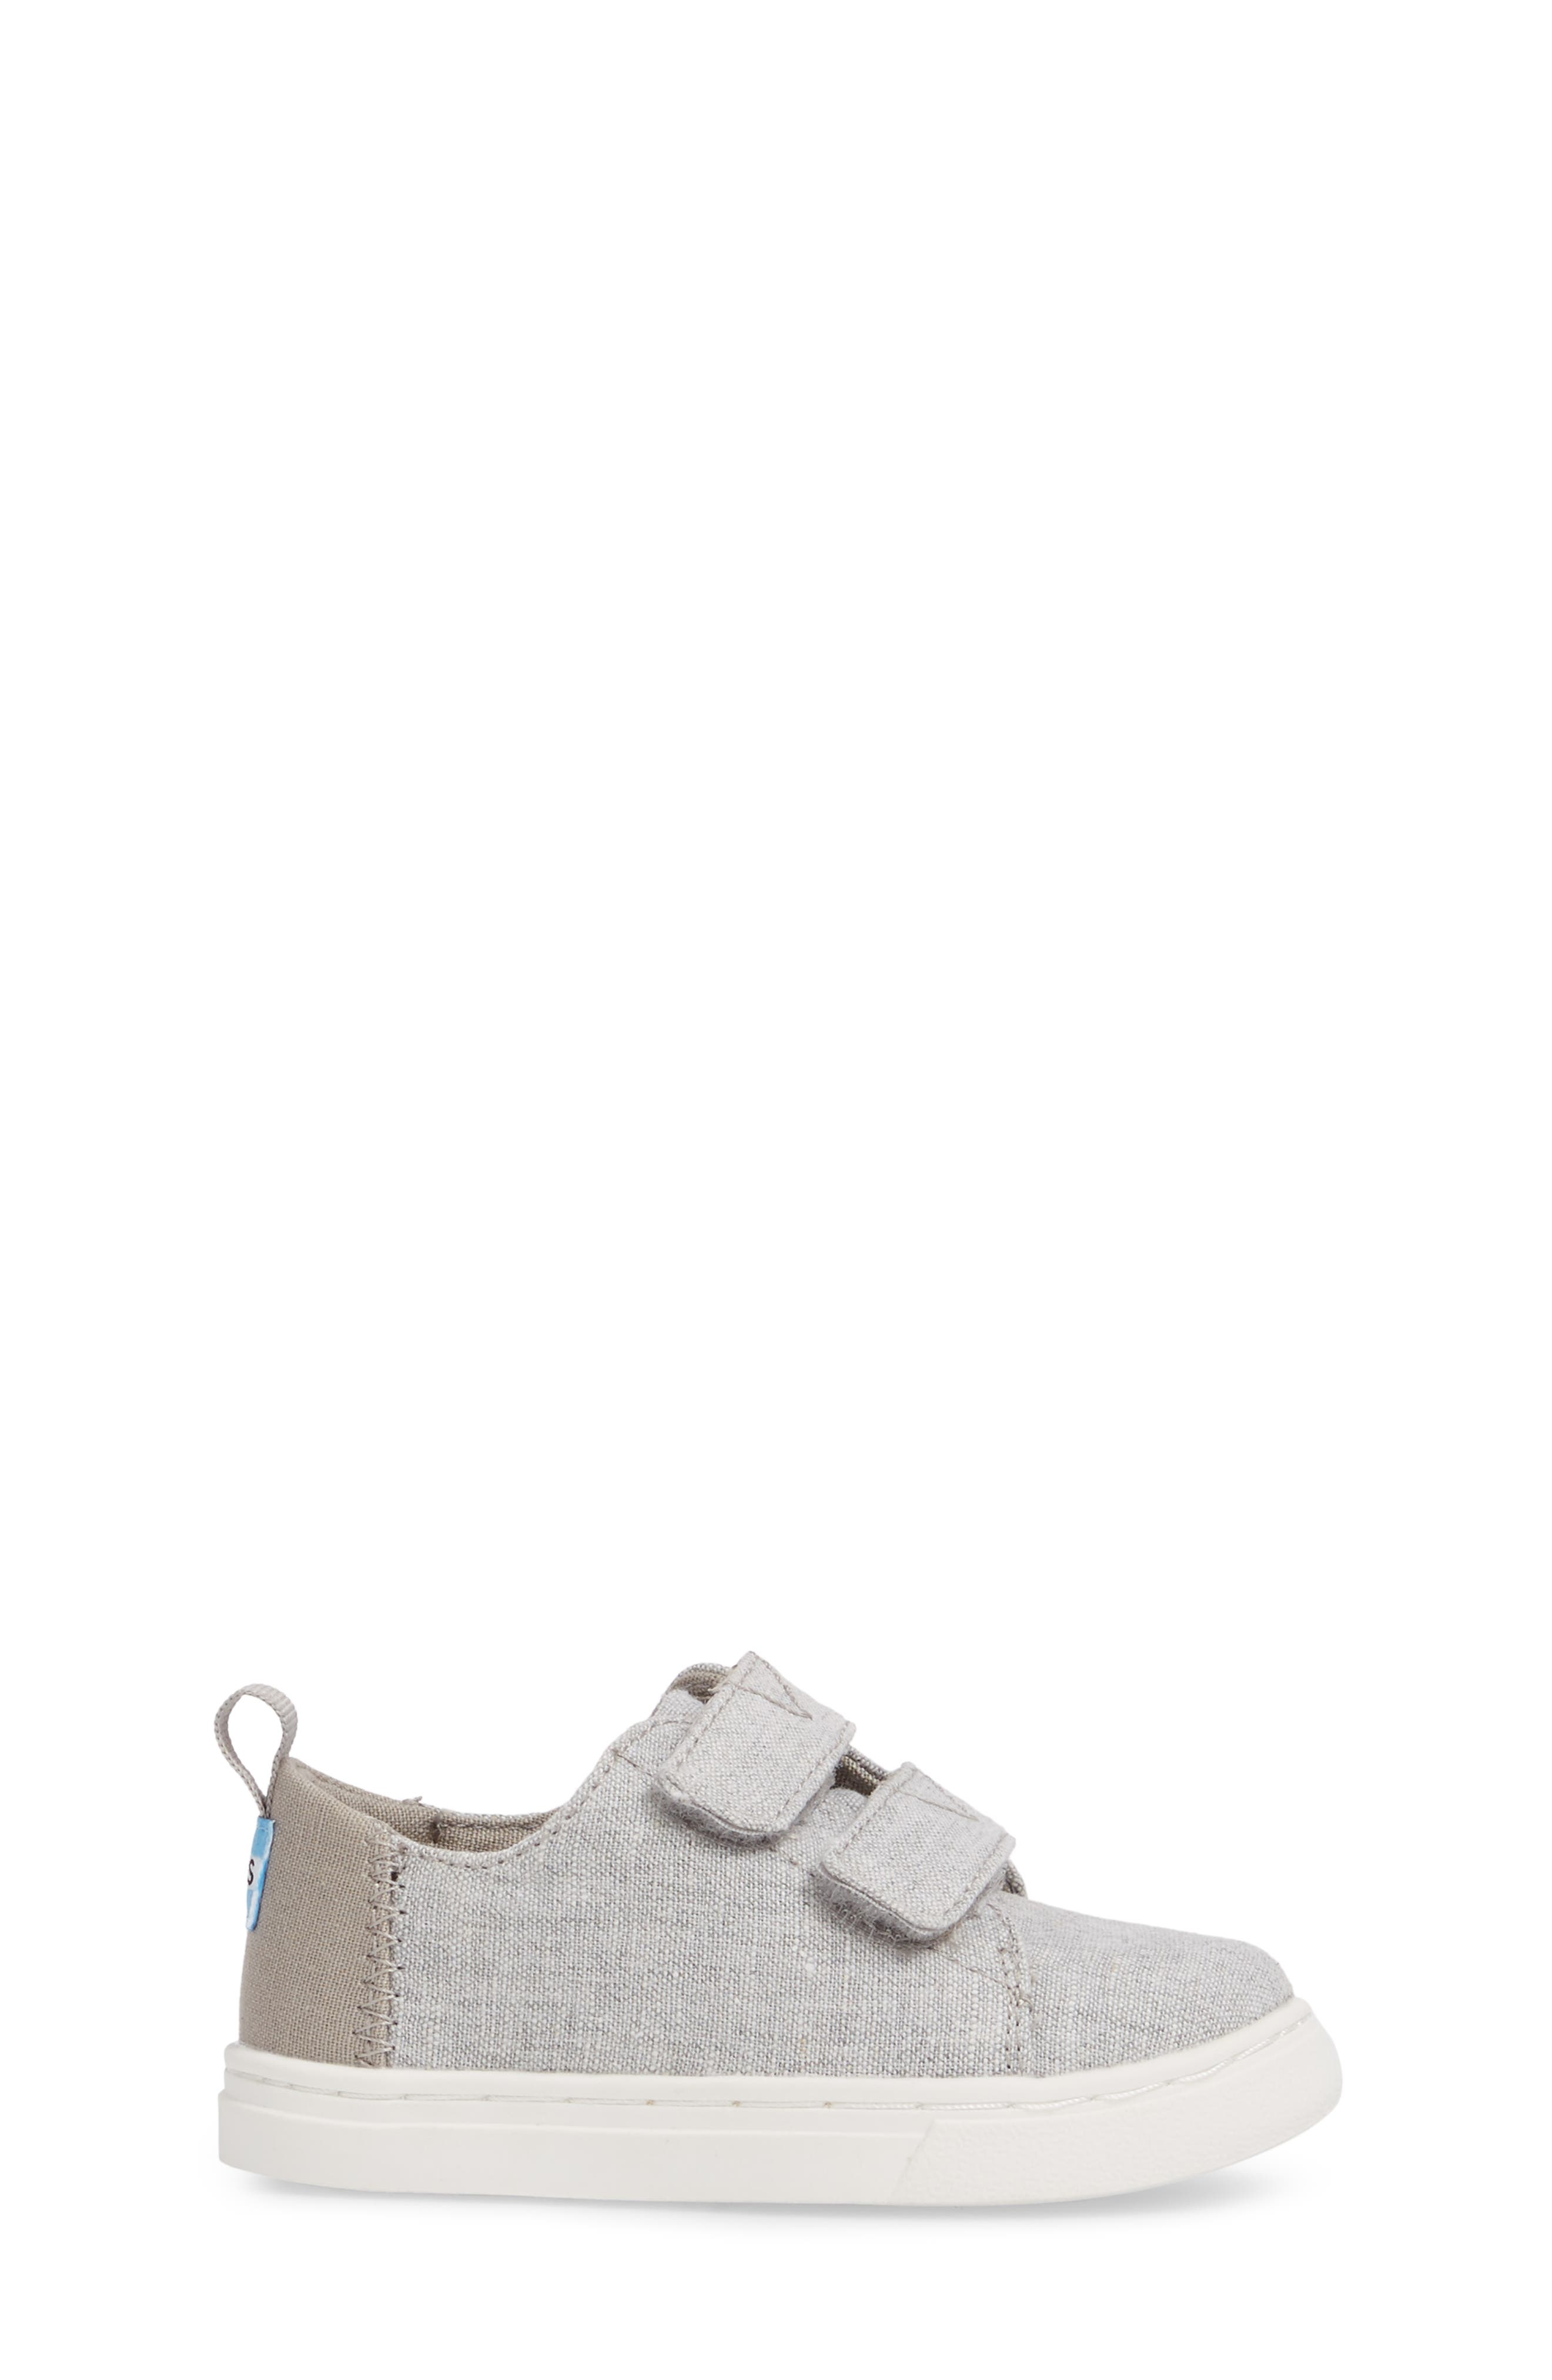 Lenny Sneaker,                             Alternate thumbnail 3, color,                             DRIZZLE GREY CHAMBRAY